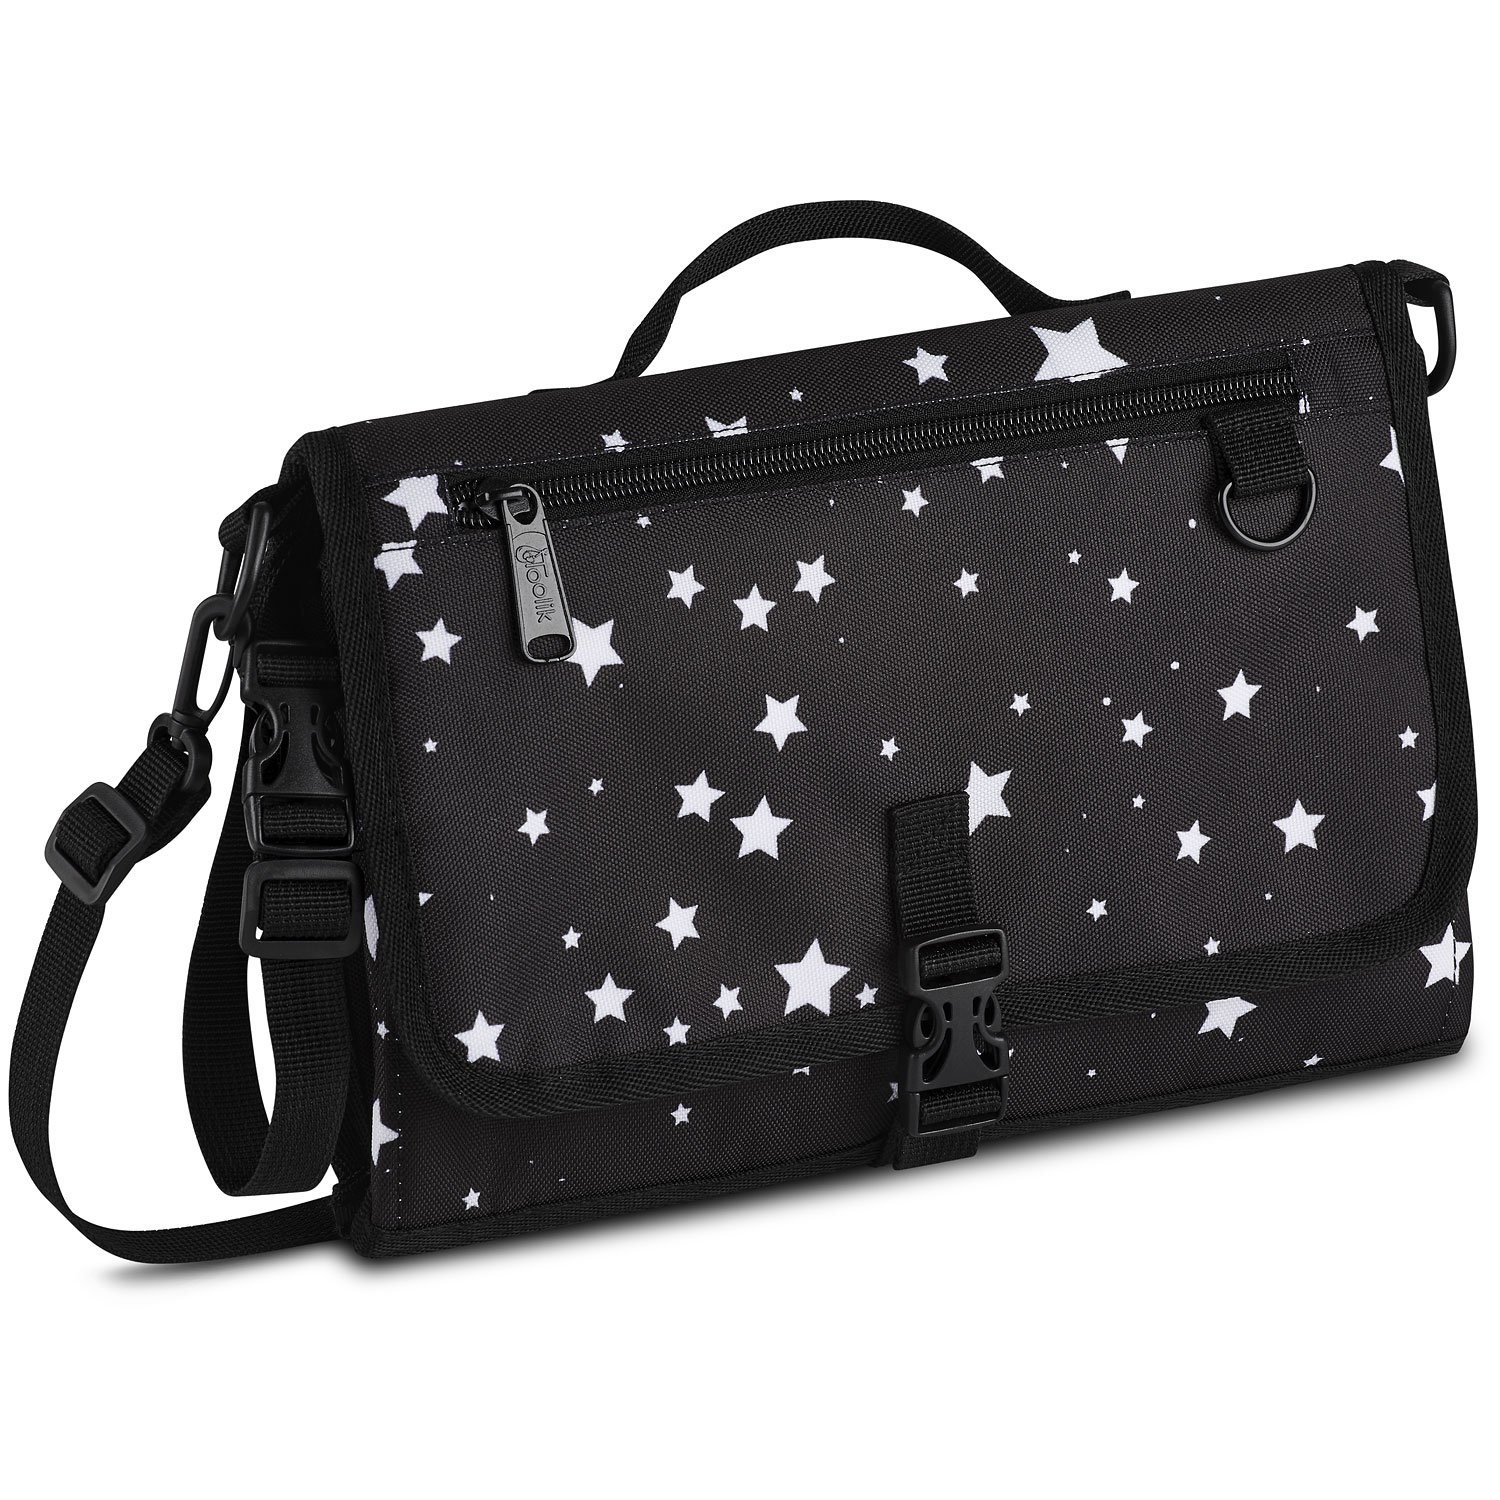 Toolik Black with White Stars Diaper Clutch with Waterproof Changing Pad for Baby, Portable Changing Station